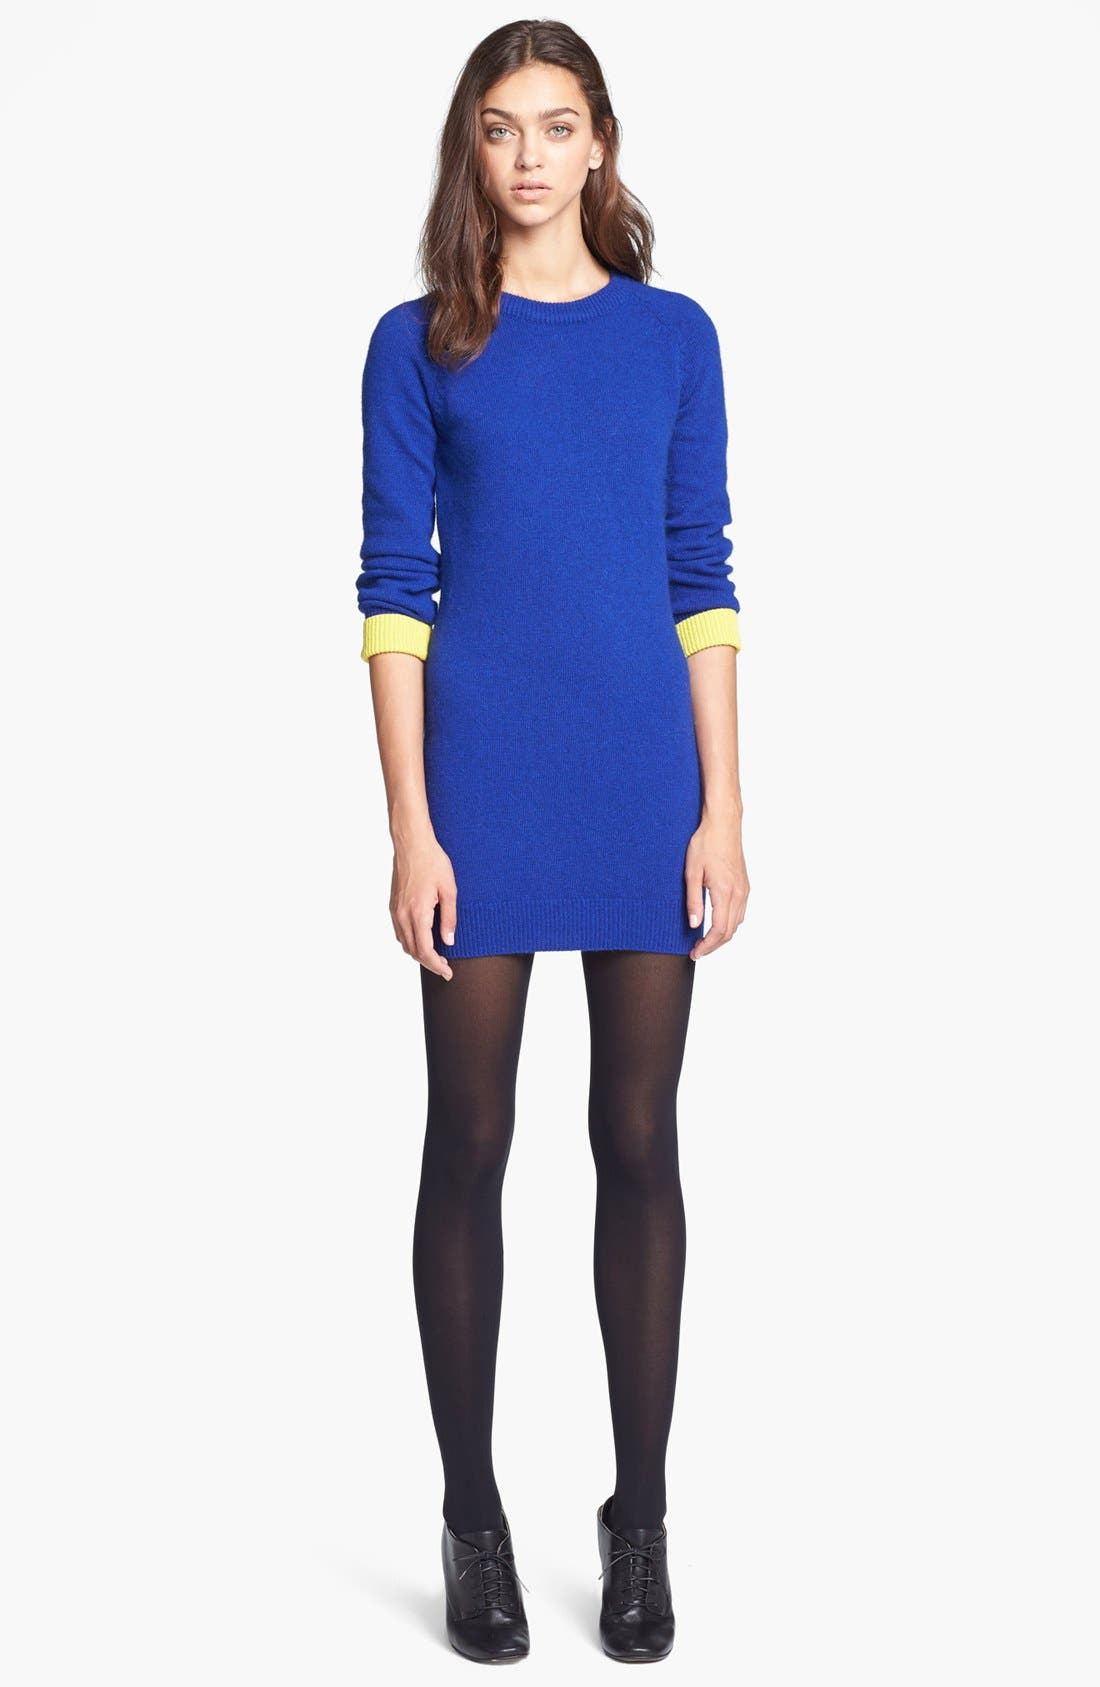 Alternate Image 1 Selected - Mcginn 'Nelly' Sweater Dress